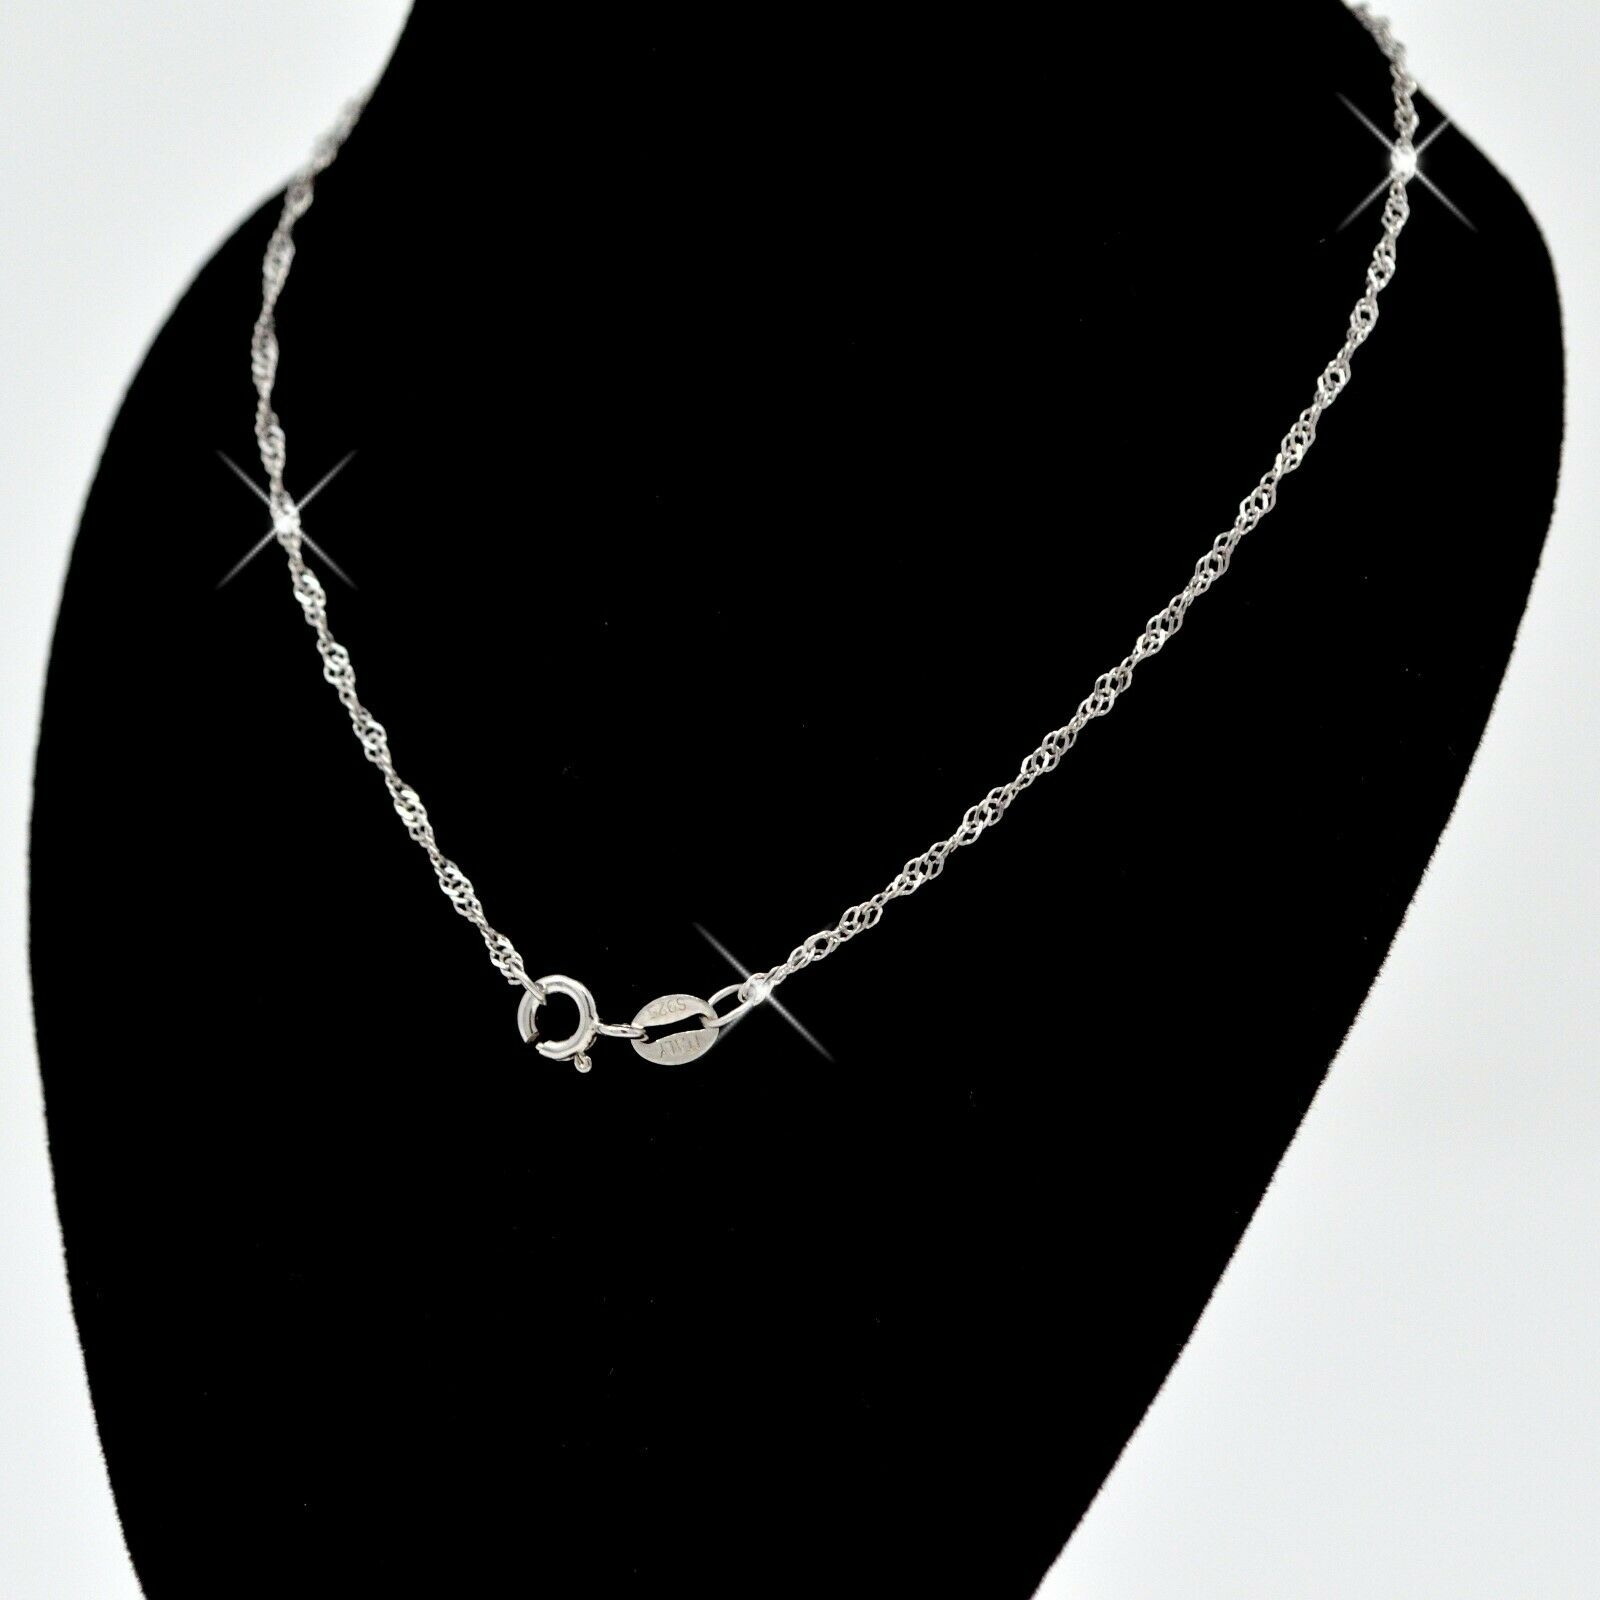 Jewellery - REAL SOLID SILVER Classic 925 Sterling Silver Chain Necklace Jewelry (WaterWave)